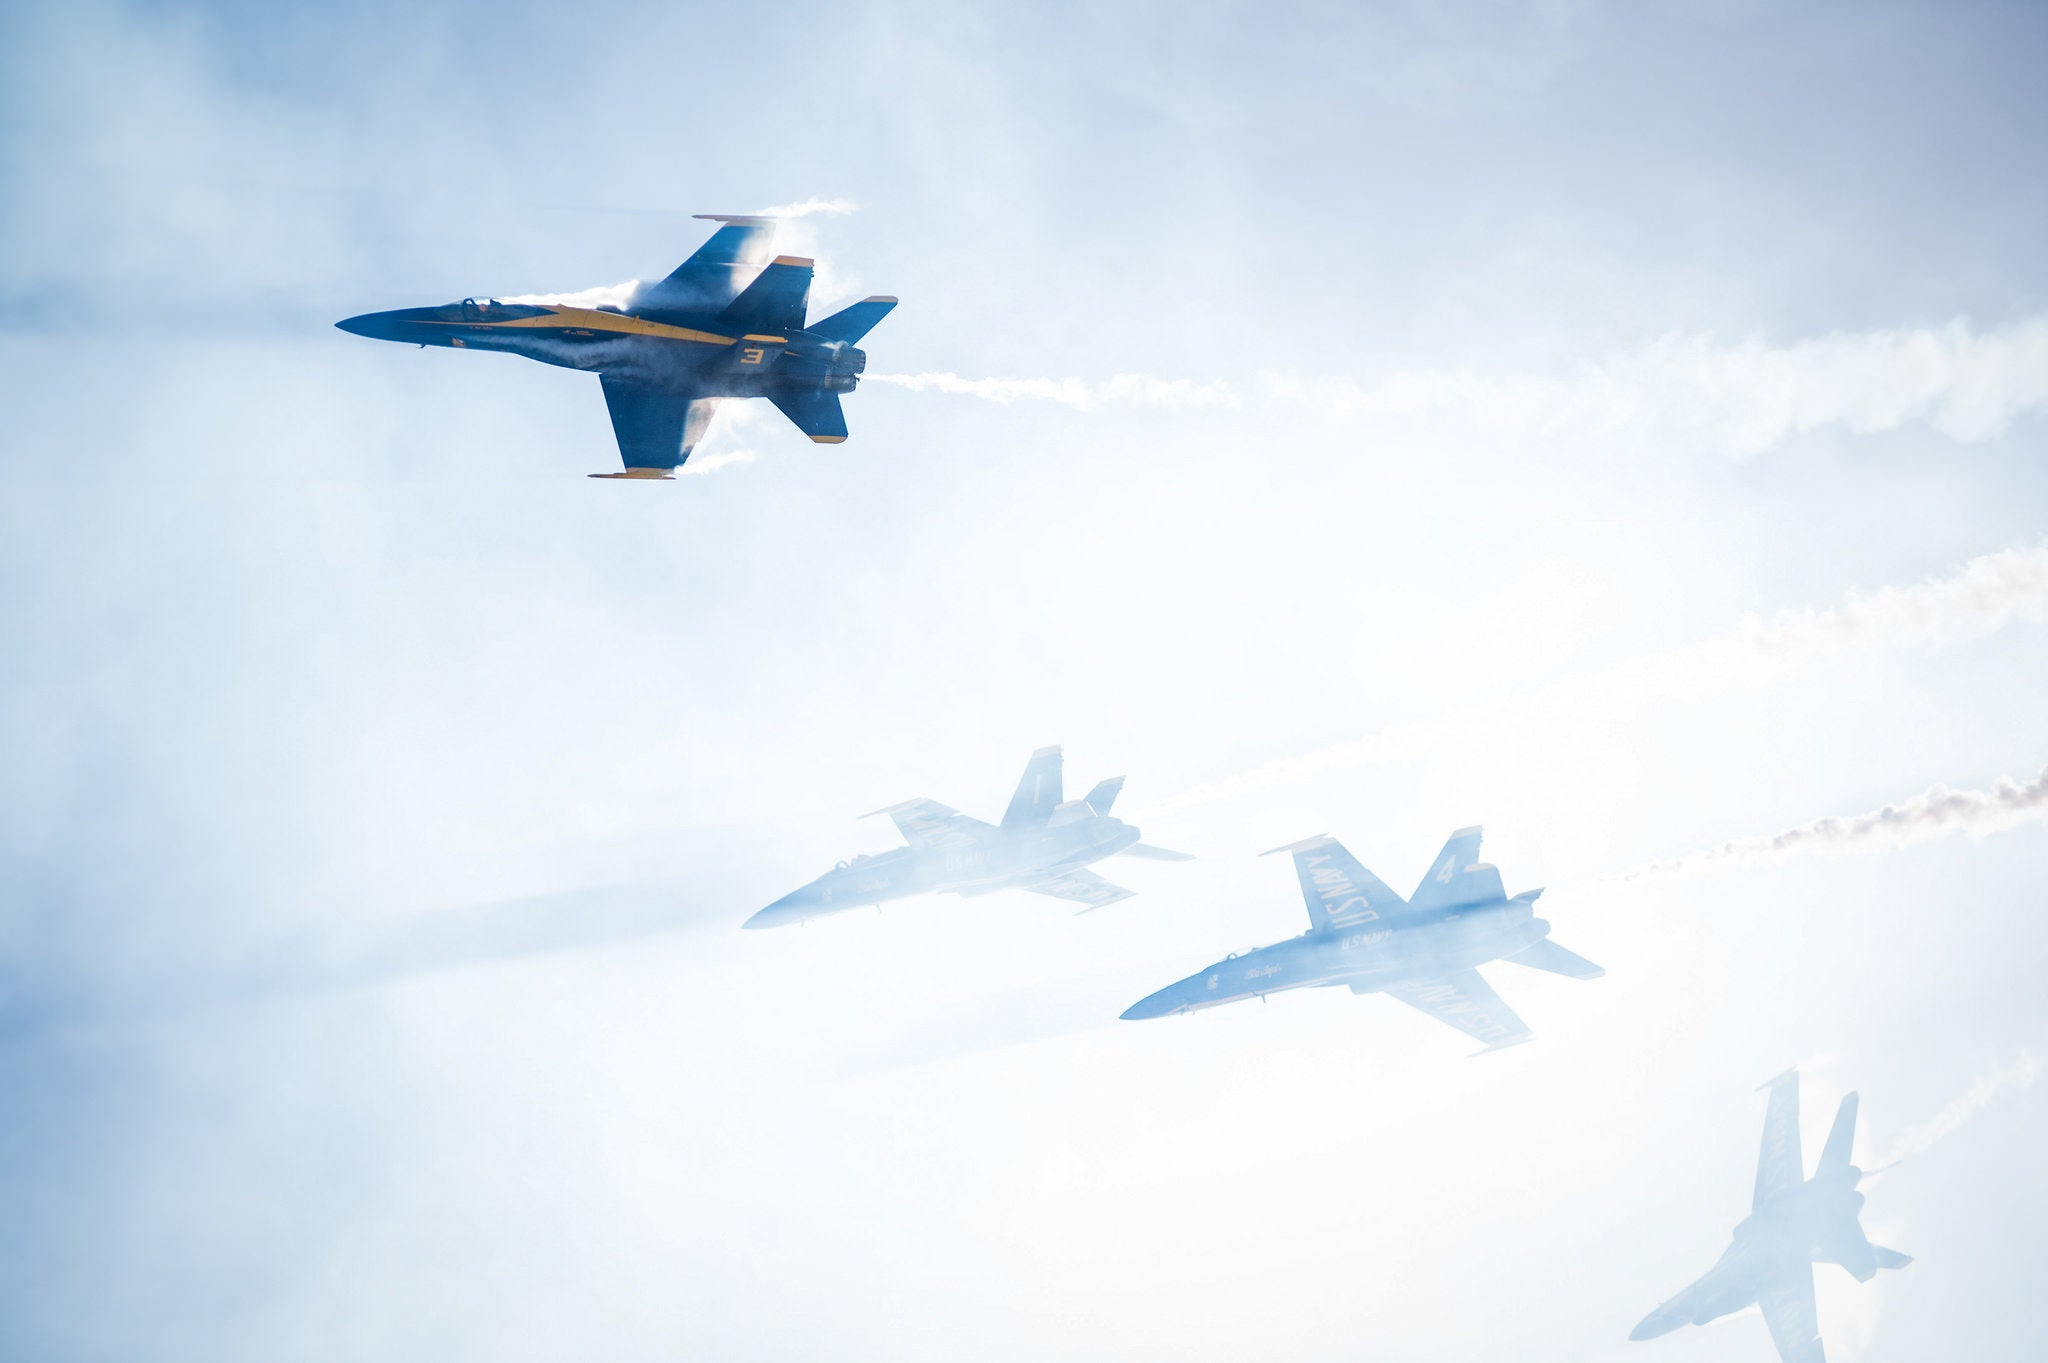 The F-18 Blue Angels Look Truly Angelic In This Photo